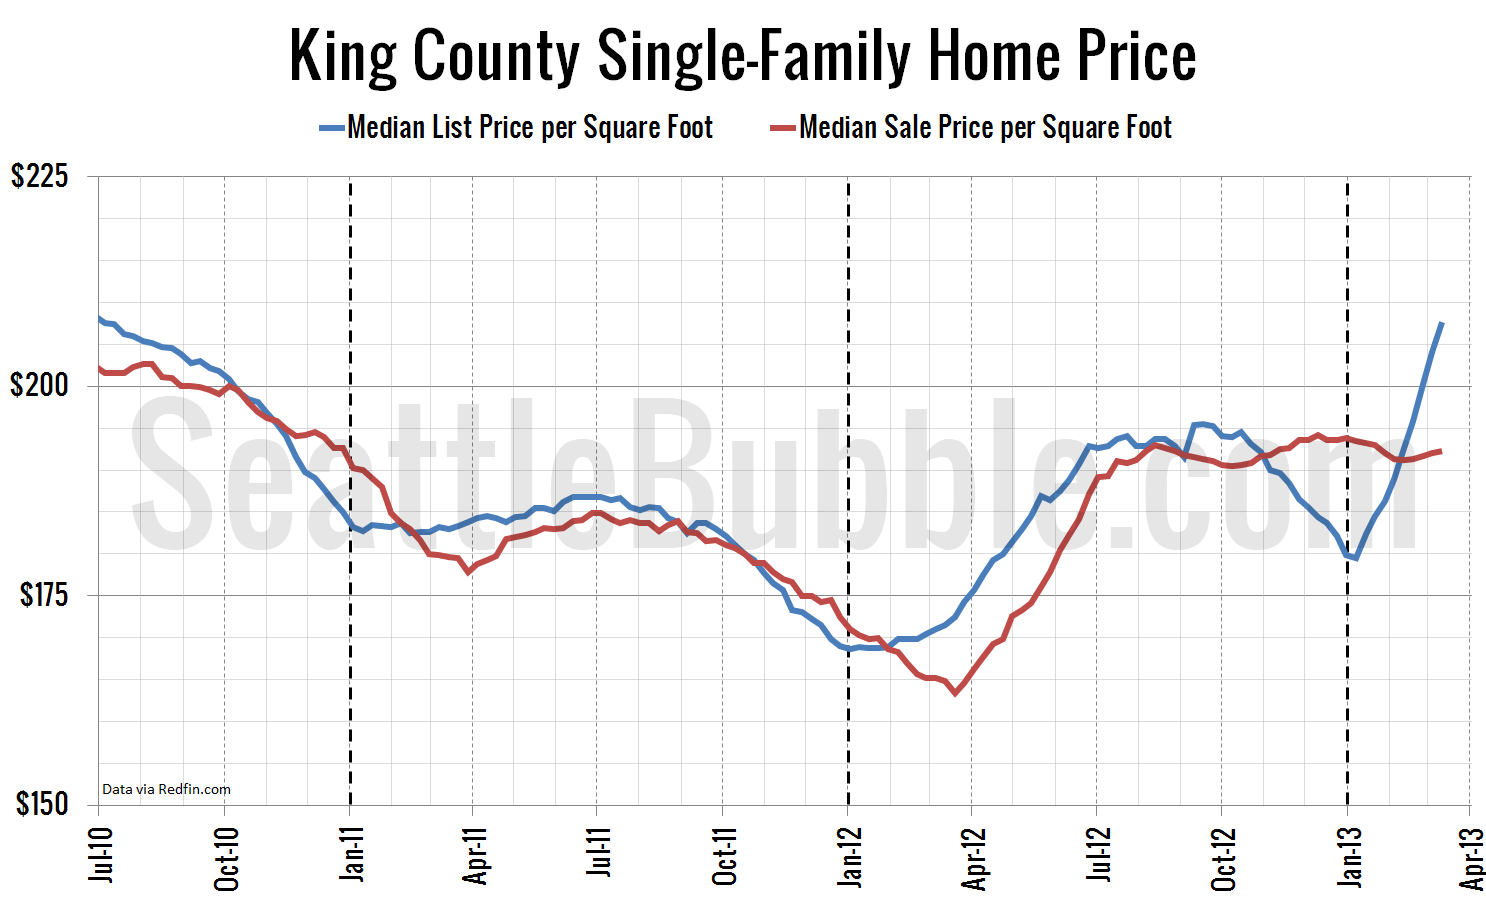 Redfin-KingCo_Prices_2013-03